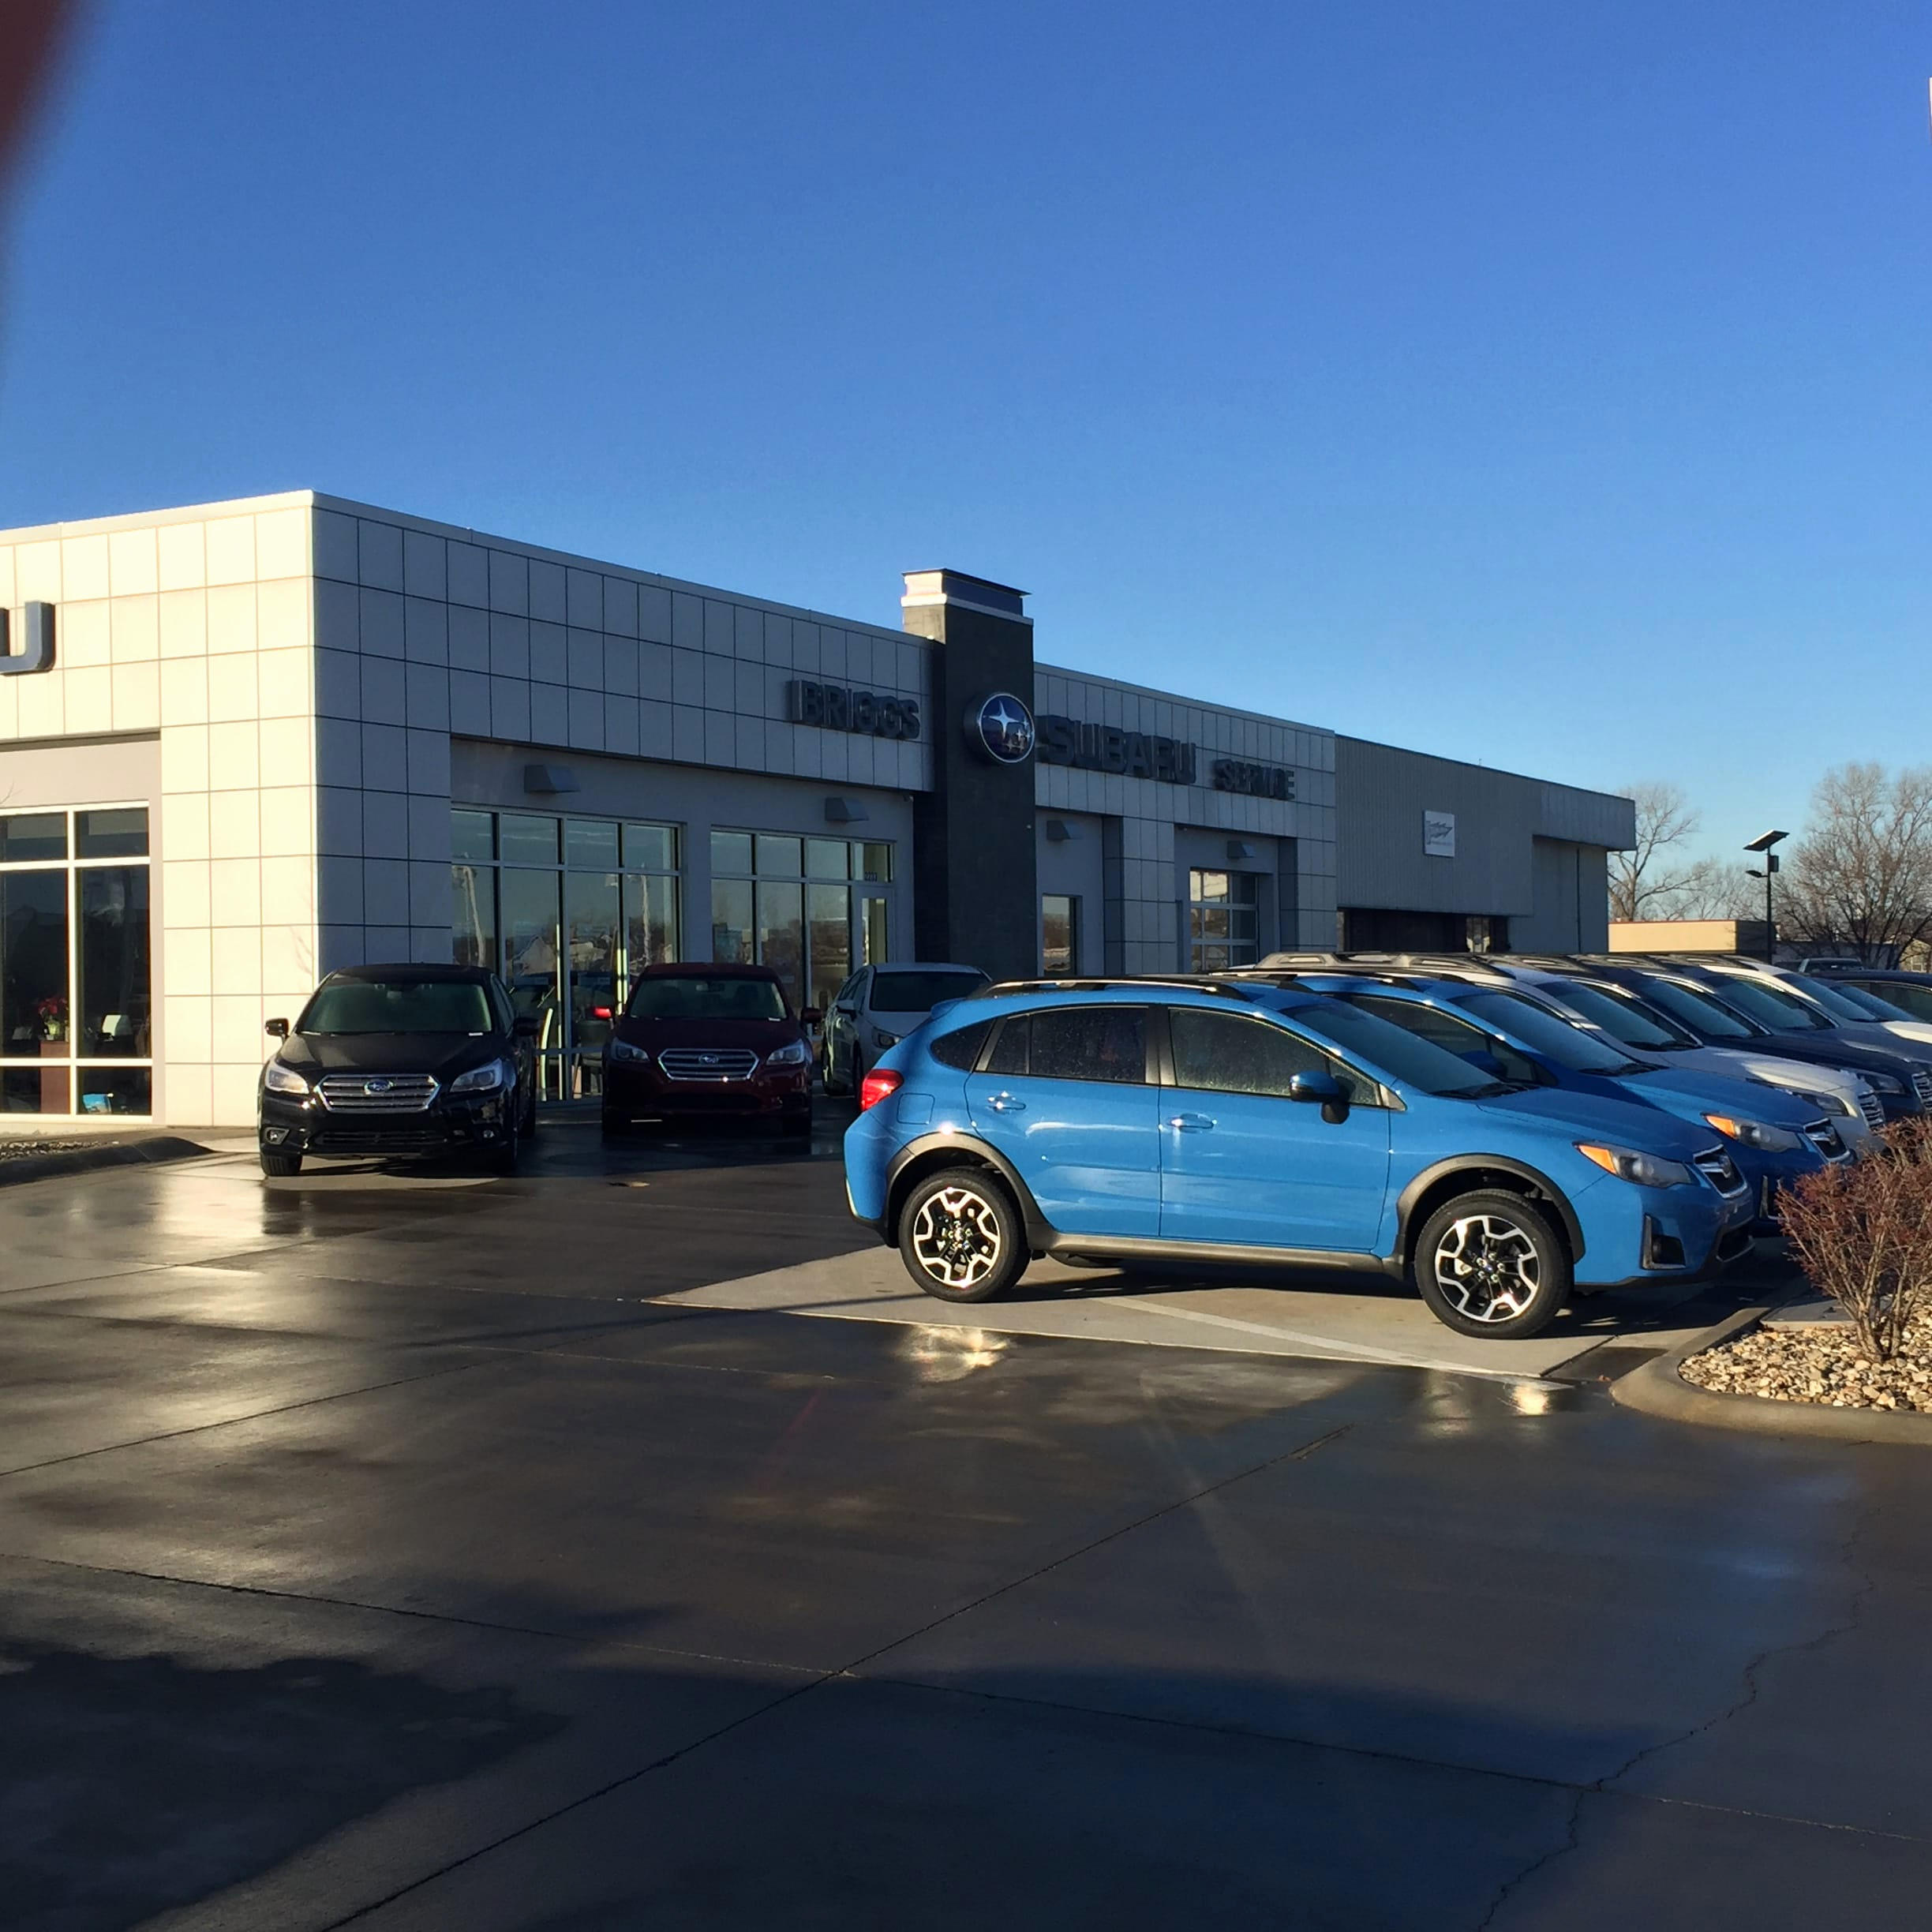 nissan murano topeka ks lovely used car inventory in lawrence ks serving overland park shawnee